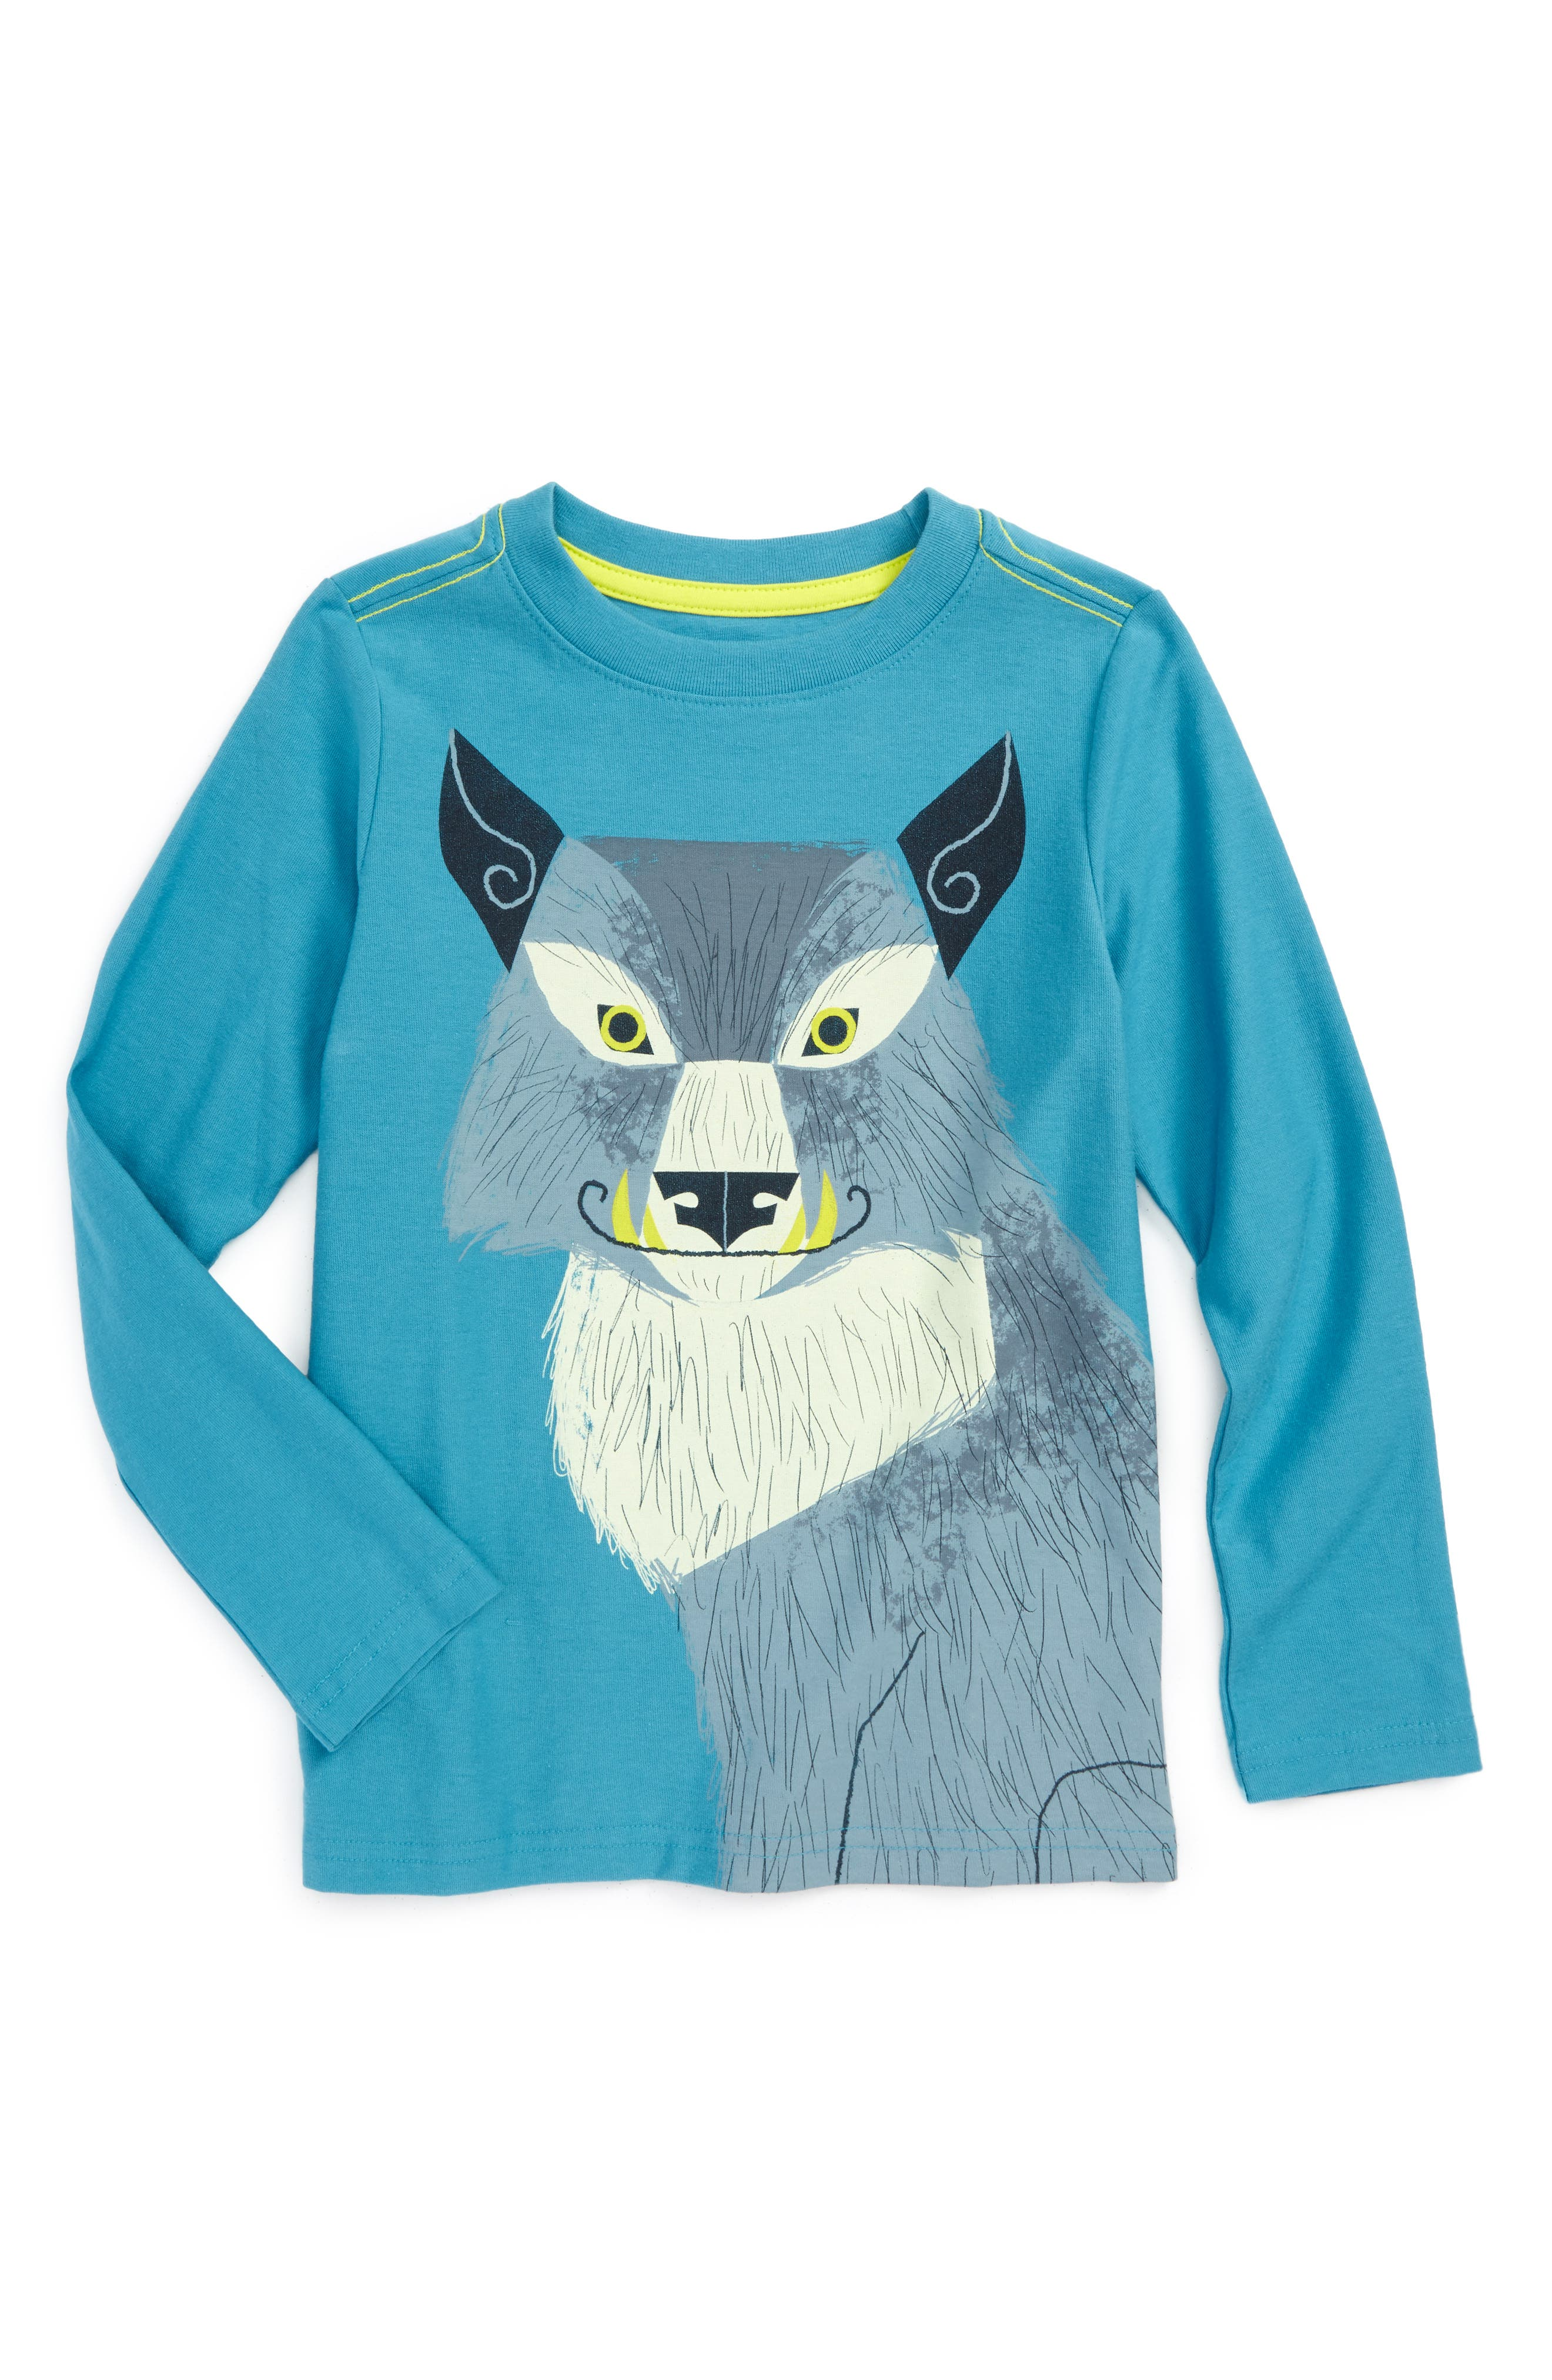 Wulver Graphic T-Shirt,                         Main,                         color,